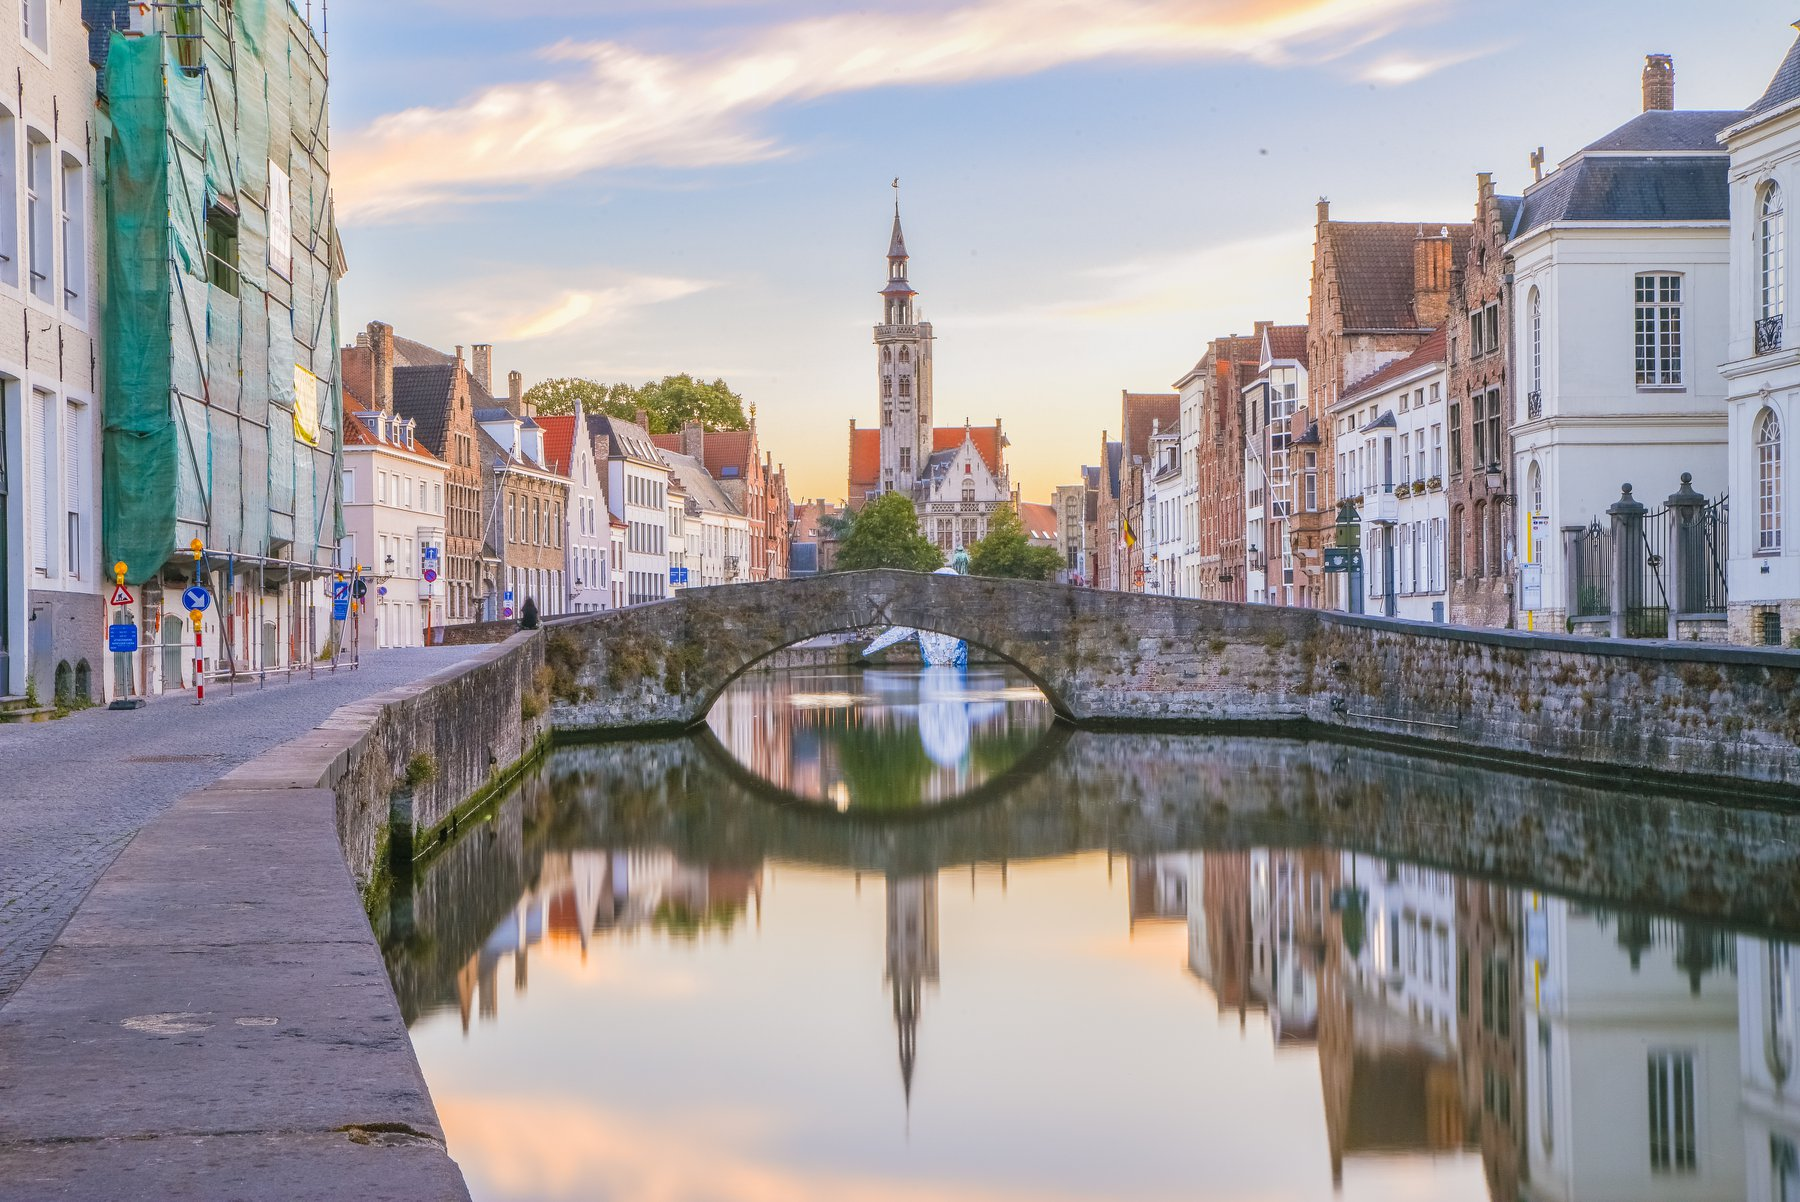 Brugges, Belgium - BEst Places to Visit in Europe in February